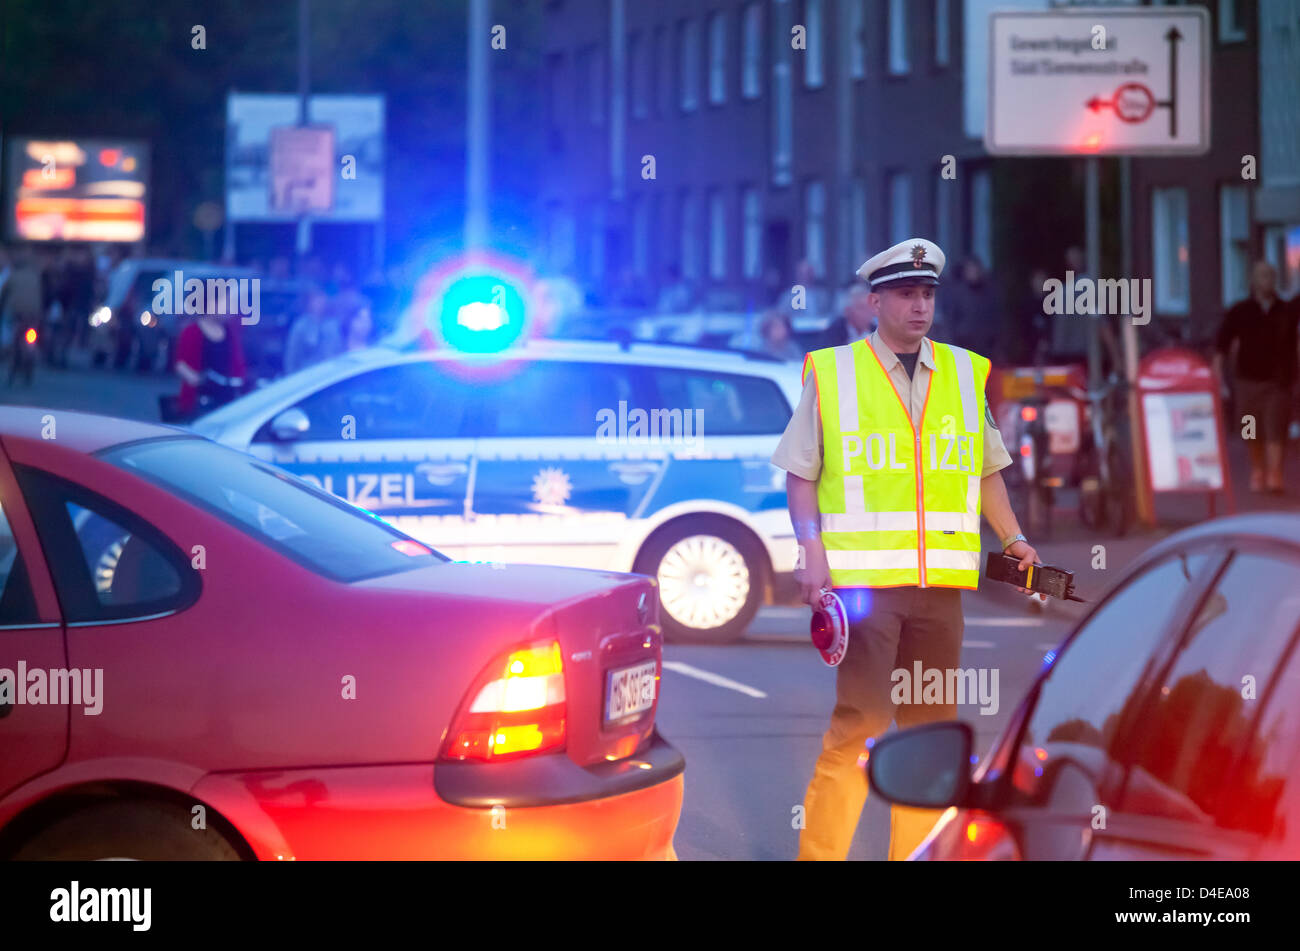 Muenster, Germany, police used at football matches - Stock Image